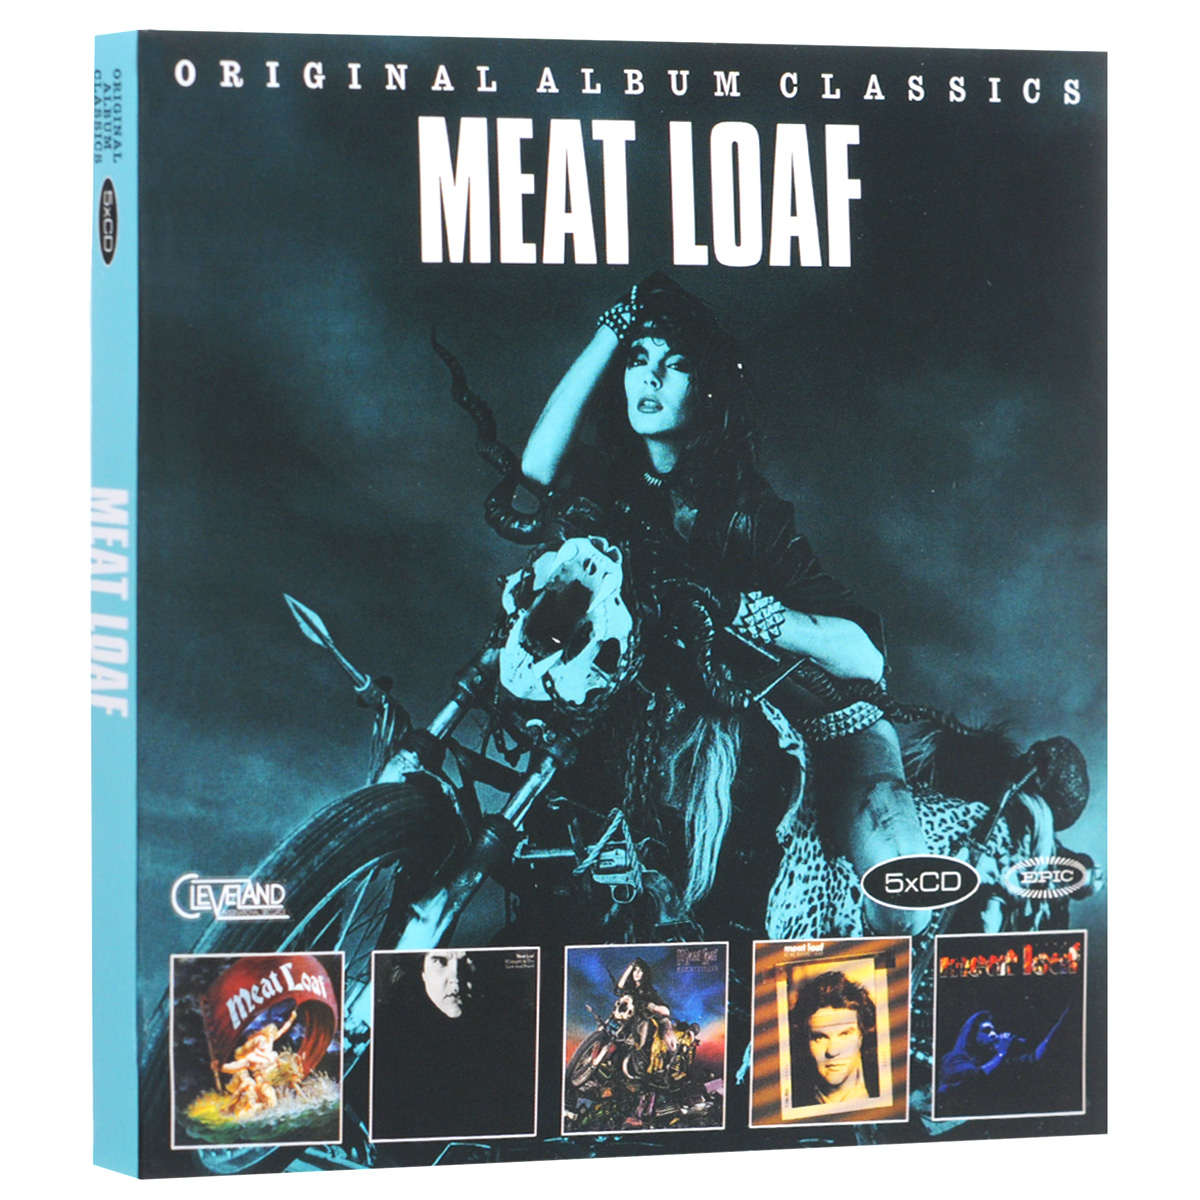 Мит Лоуф Meat Loaf. Original Album Classics (5 CD) quiet riot quiet riot original album classics 5 cd